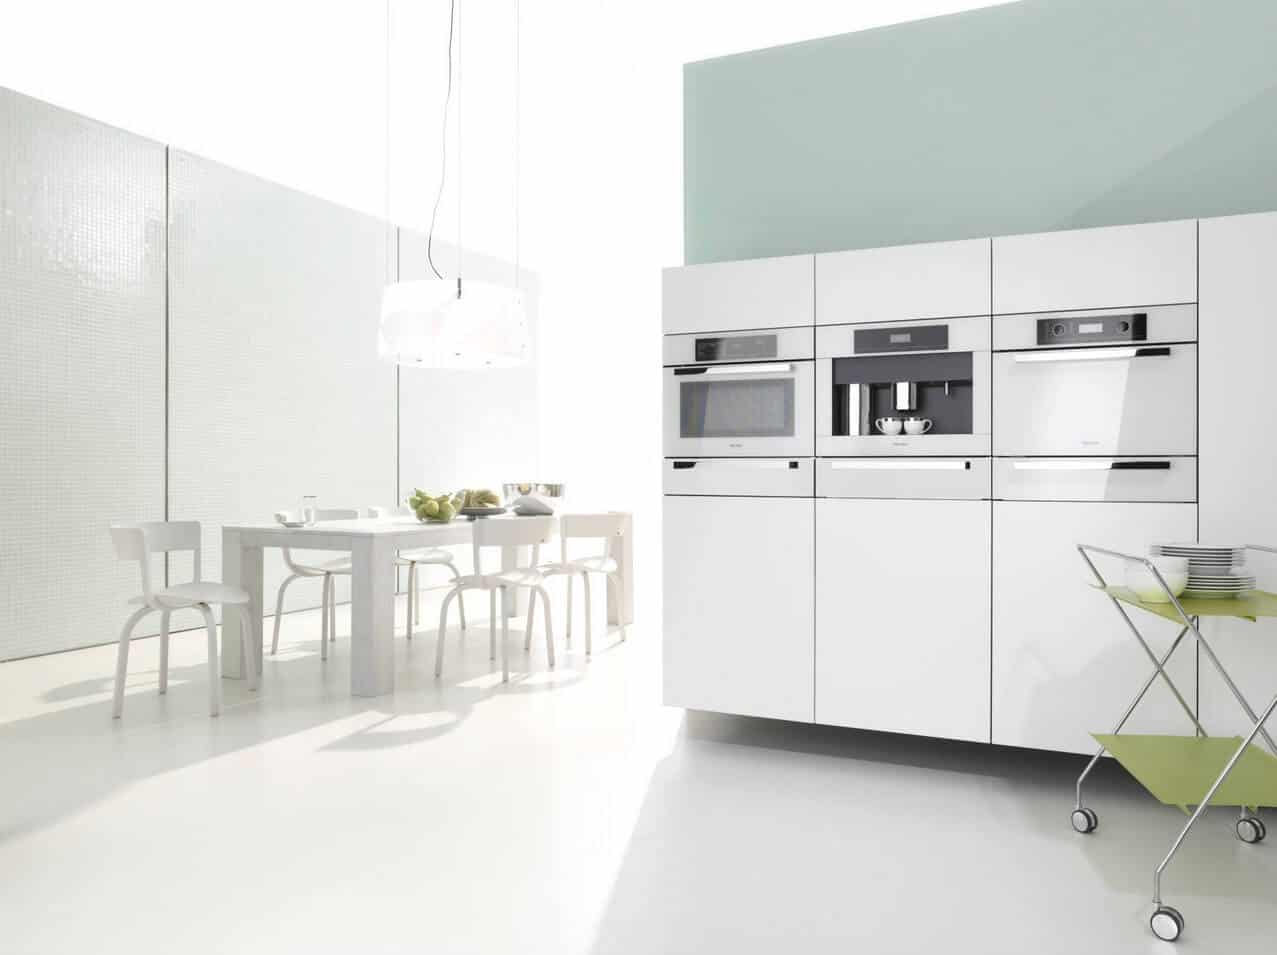 The sleek kitchen offers white modular appliances and modern dining space on the side illuminated by an oversized glass pendant.